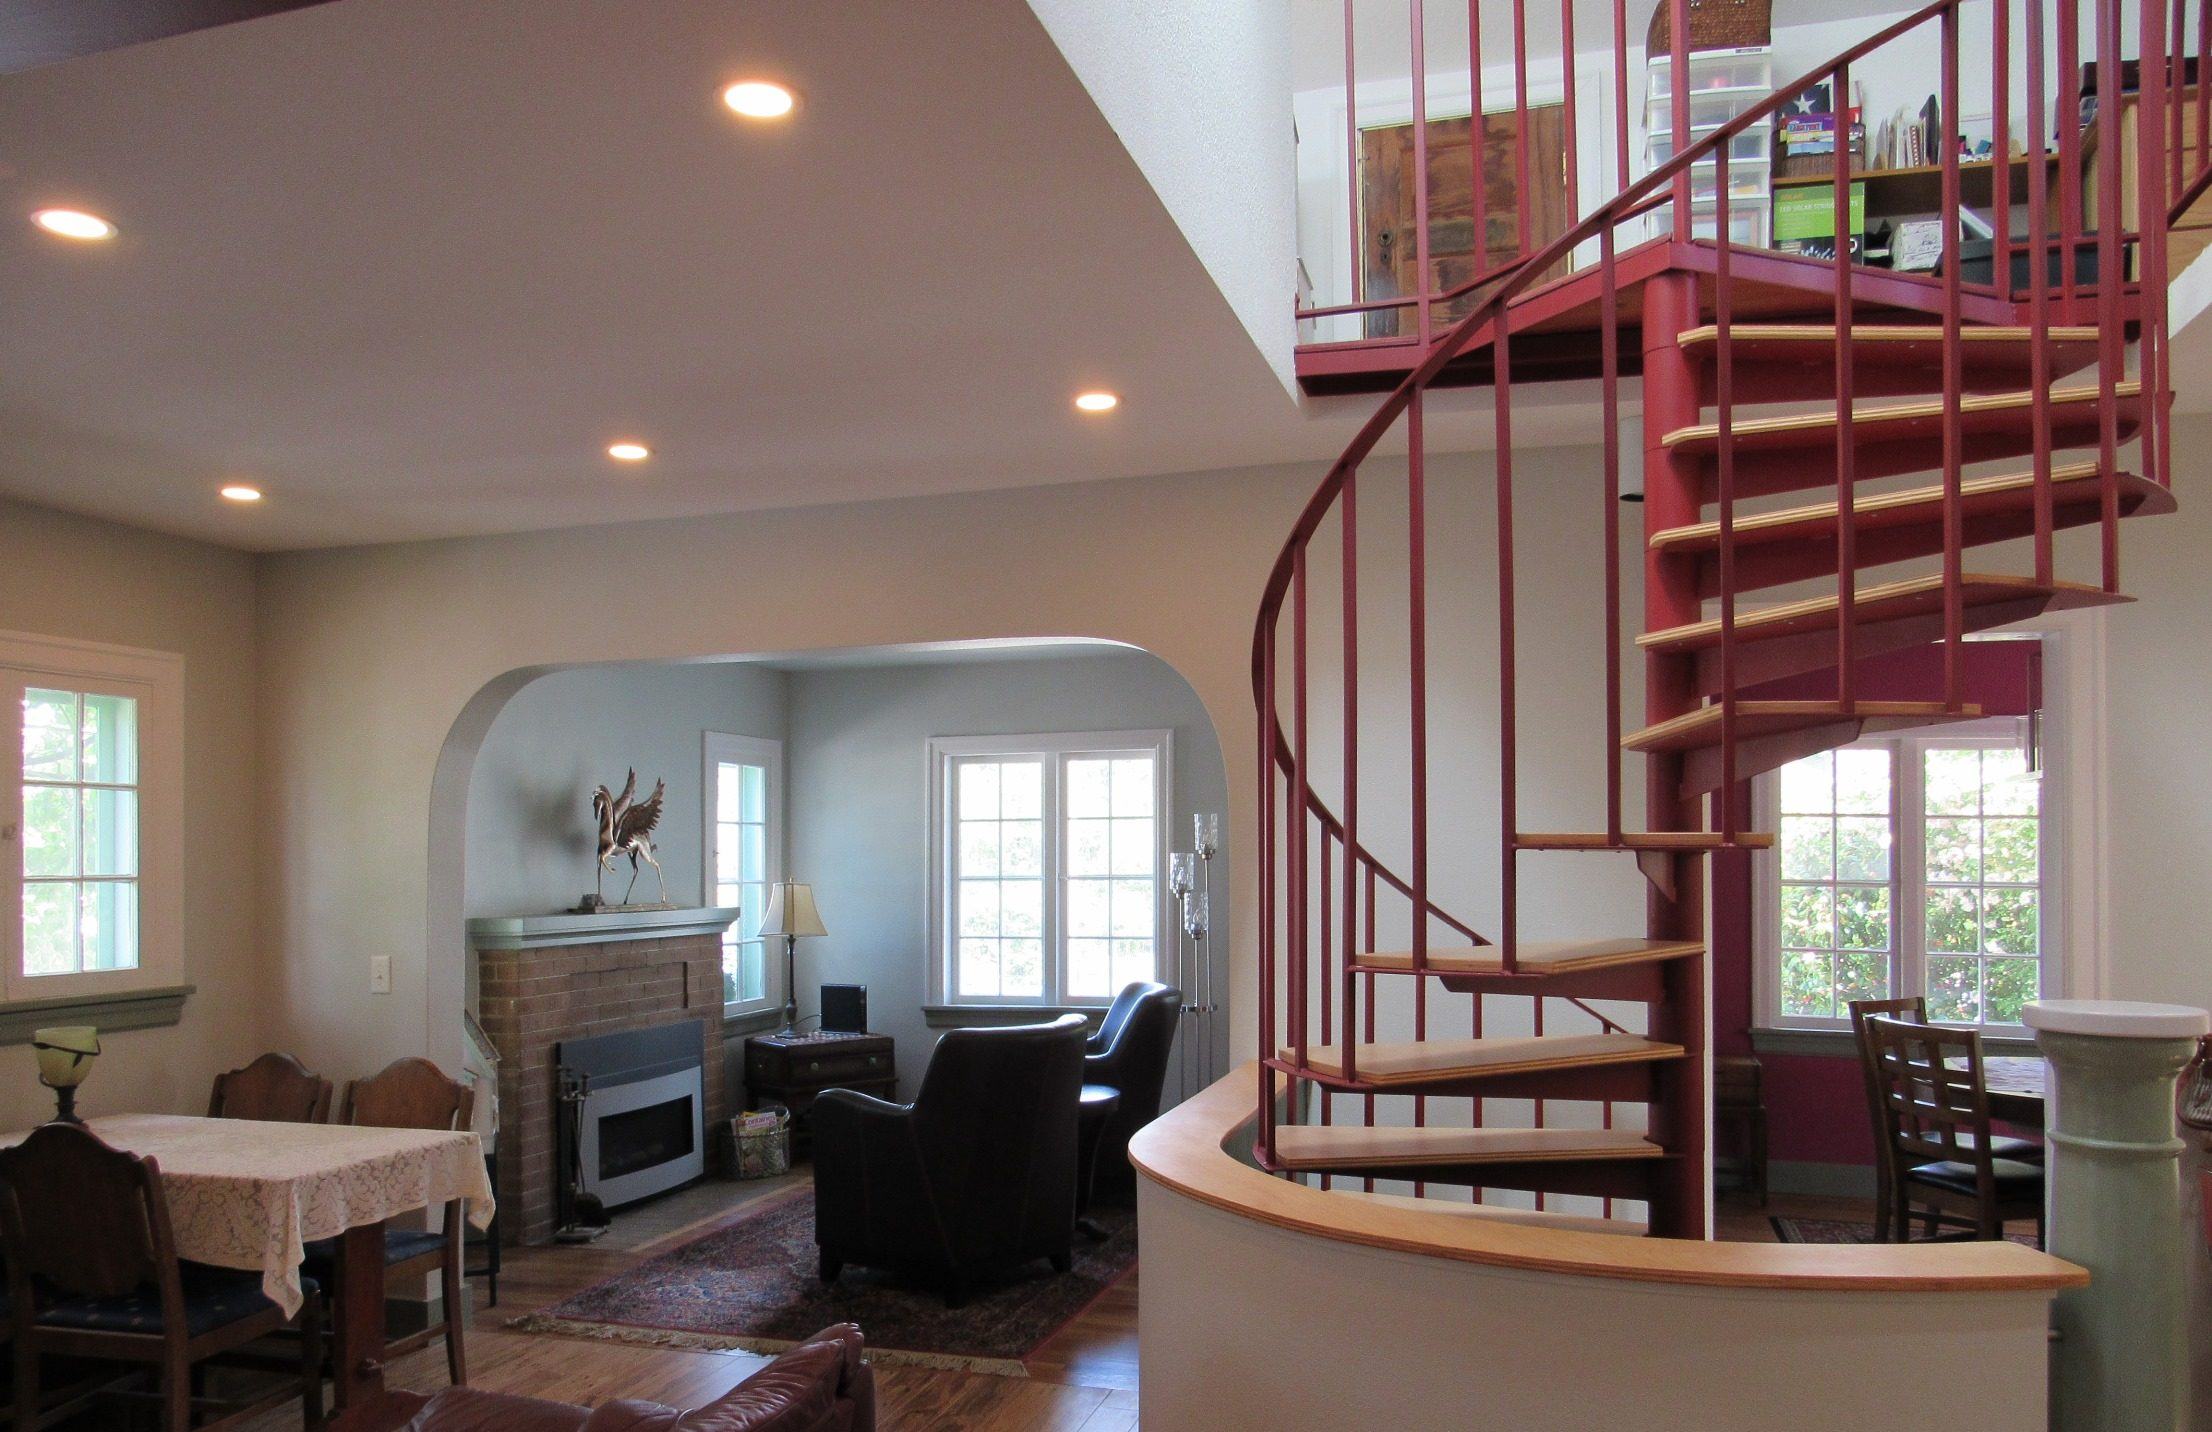 Beautify Your Space Interior Design Tips From A 1 Builders and